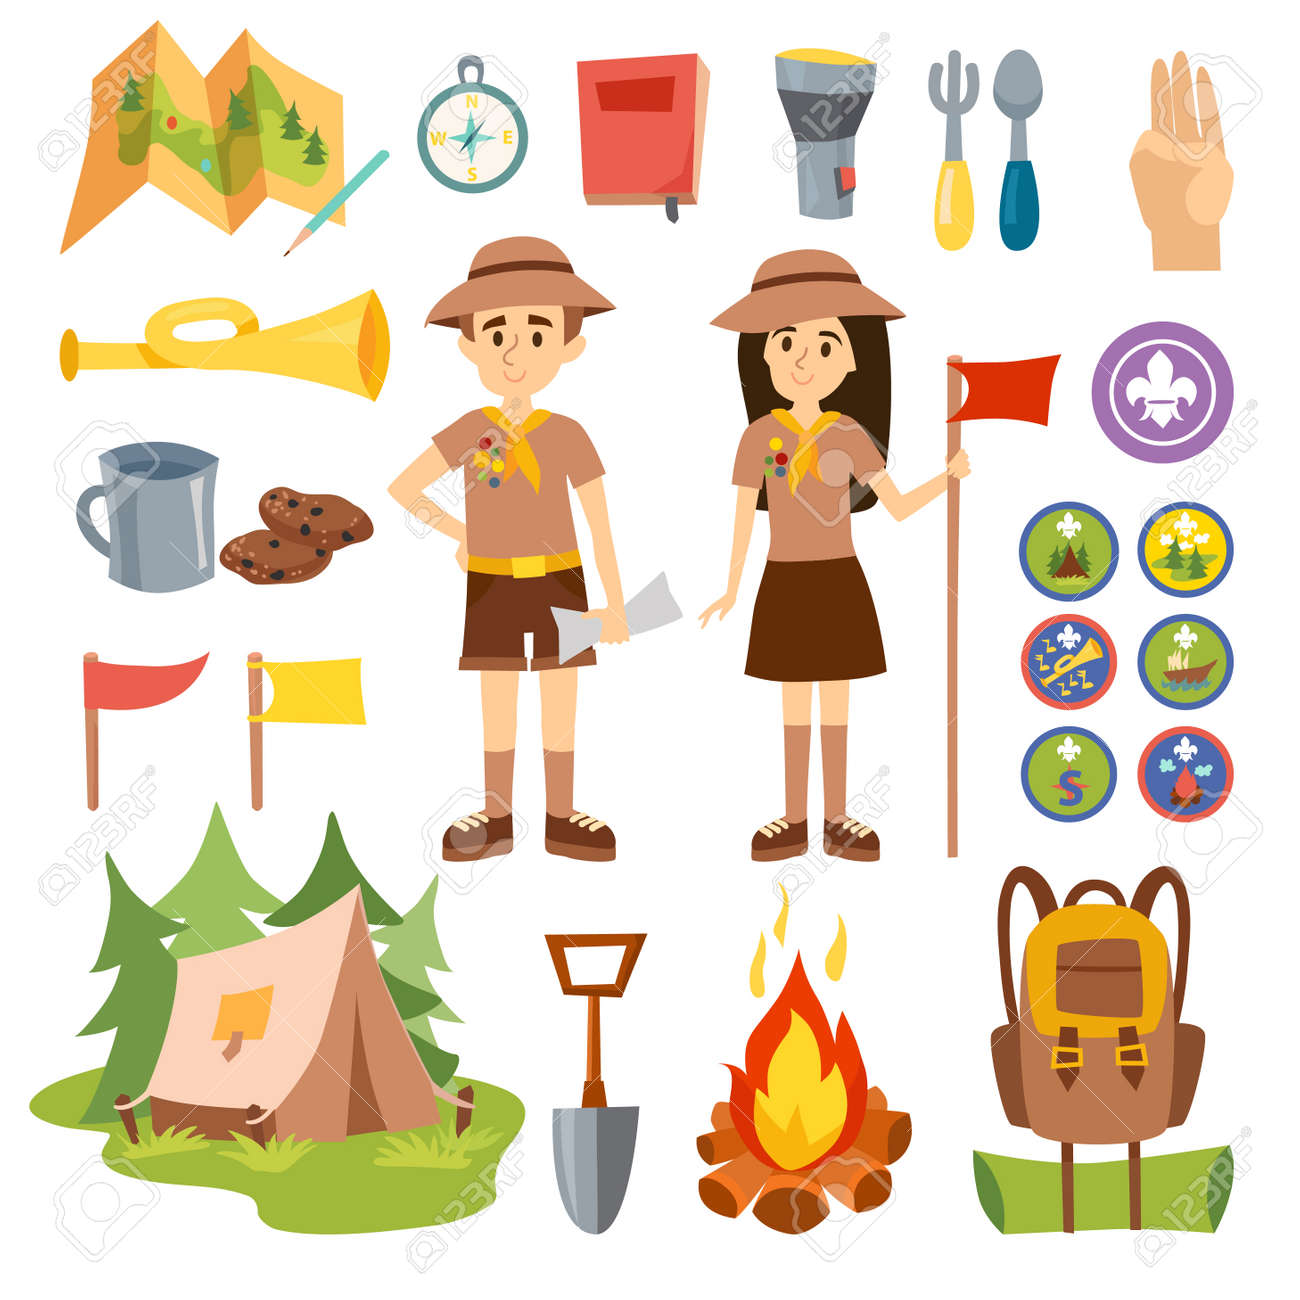 Set Of Camping Equipment Symbols And Boy Scouts Icons Vector Outdoor